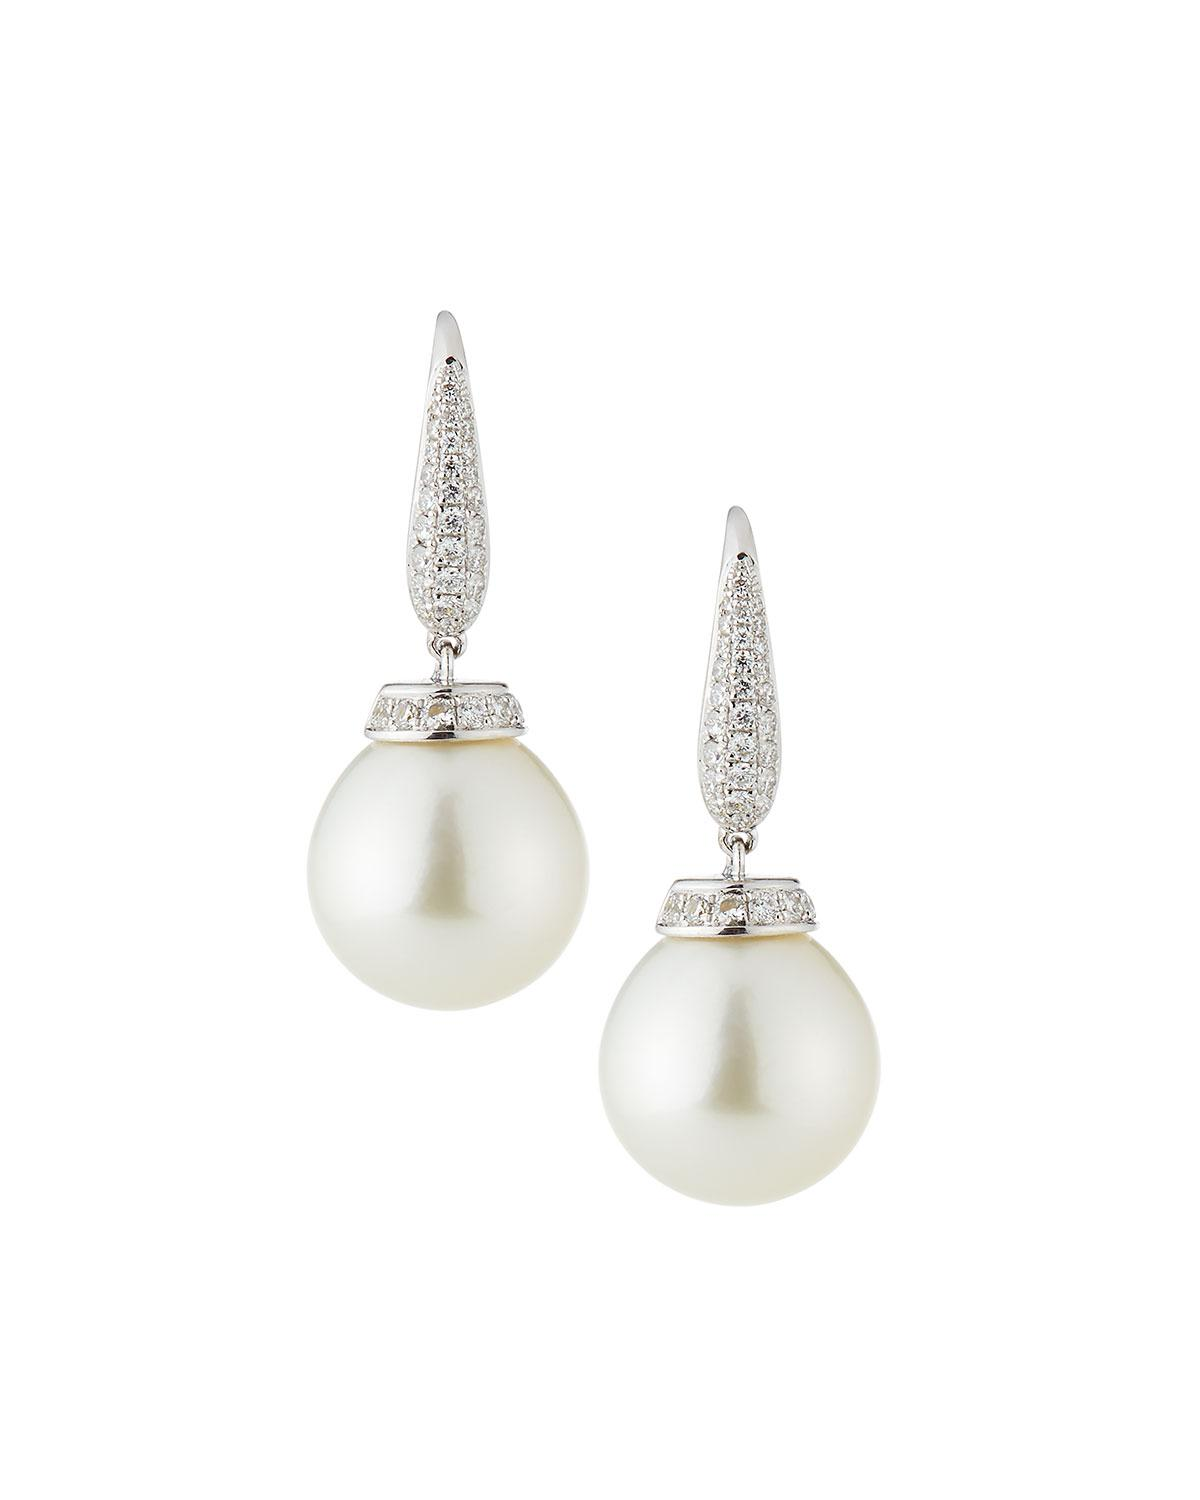 Belpearl 18k Linear Diamond & Pearl Dangle Earrings vxXryuzA